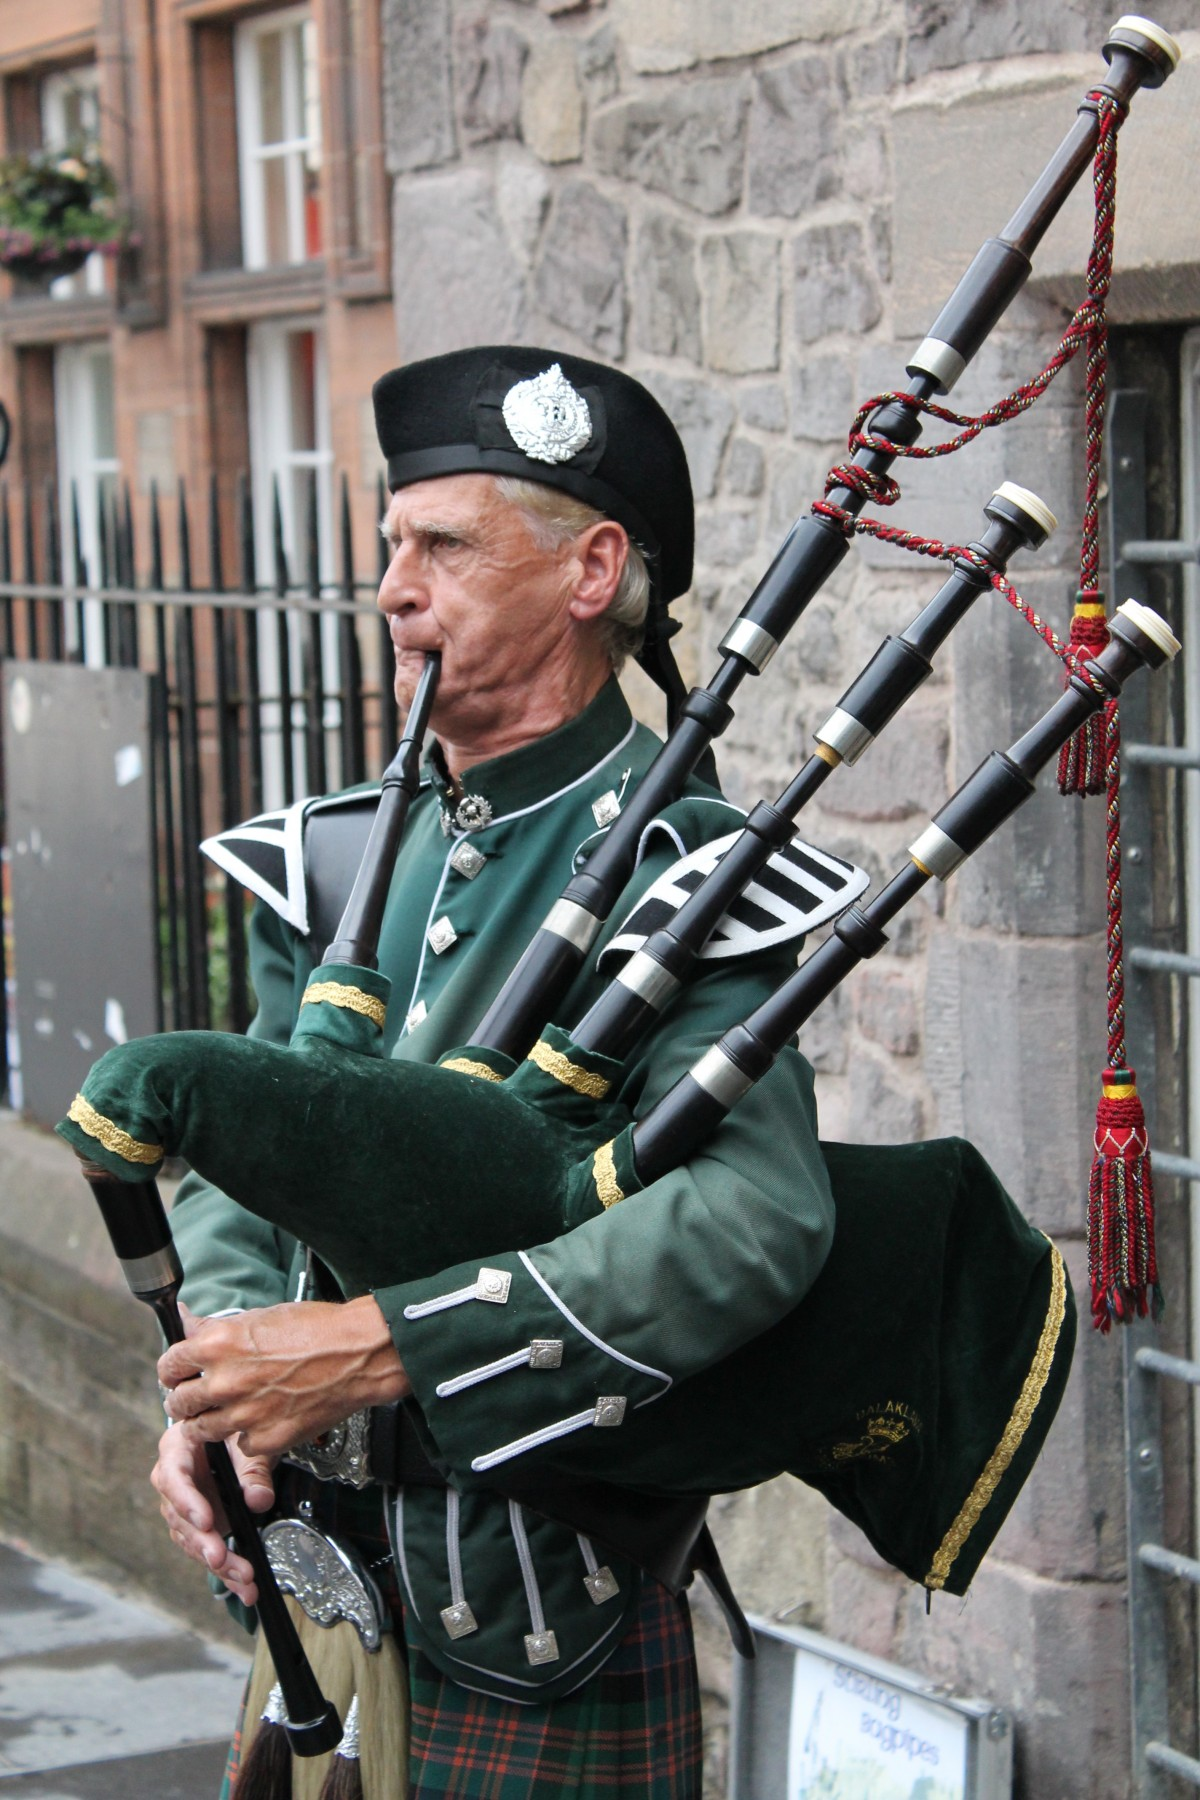 How Do You Play Bagpipes